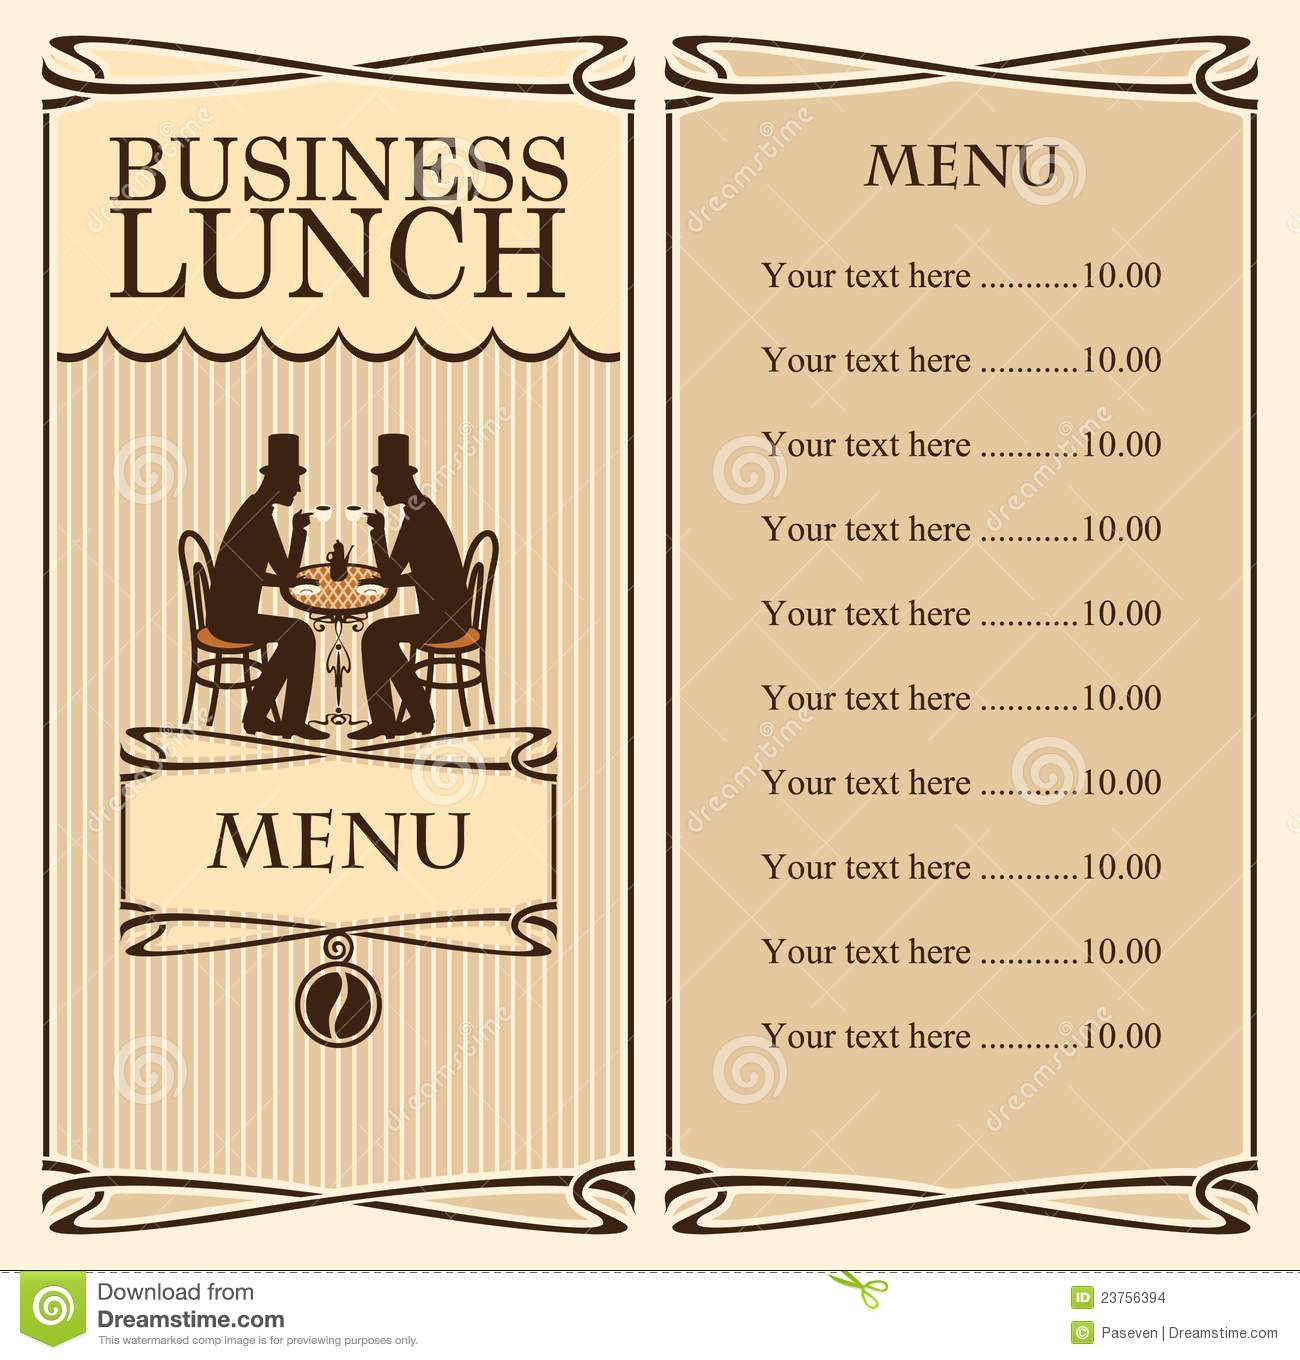 Business Lunch Meeting Clipart.